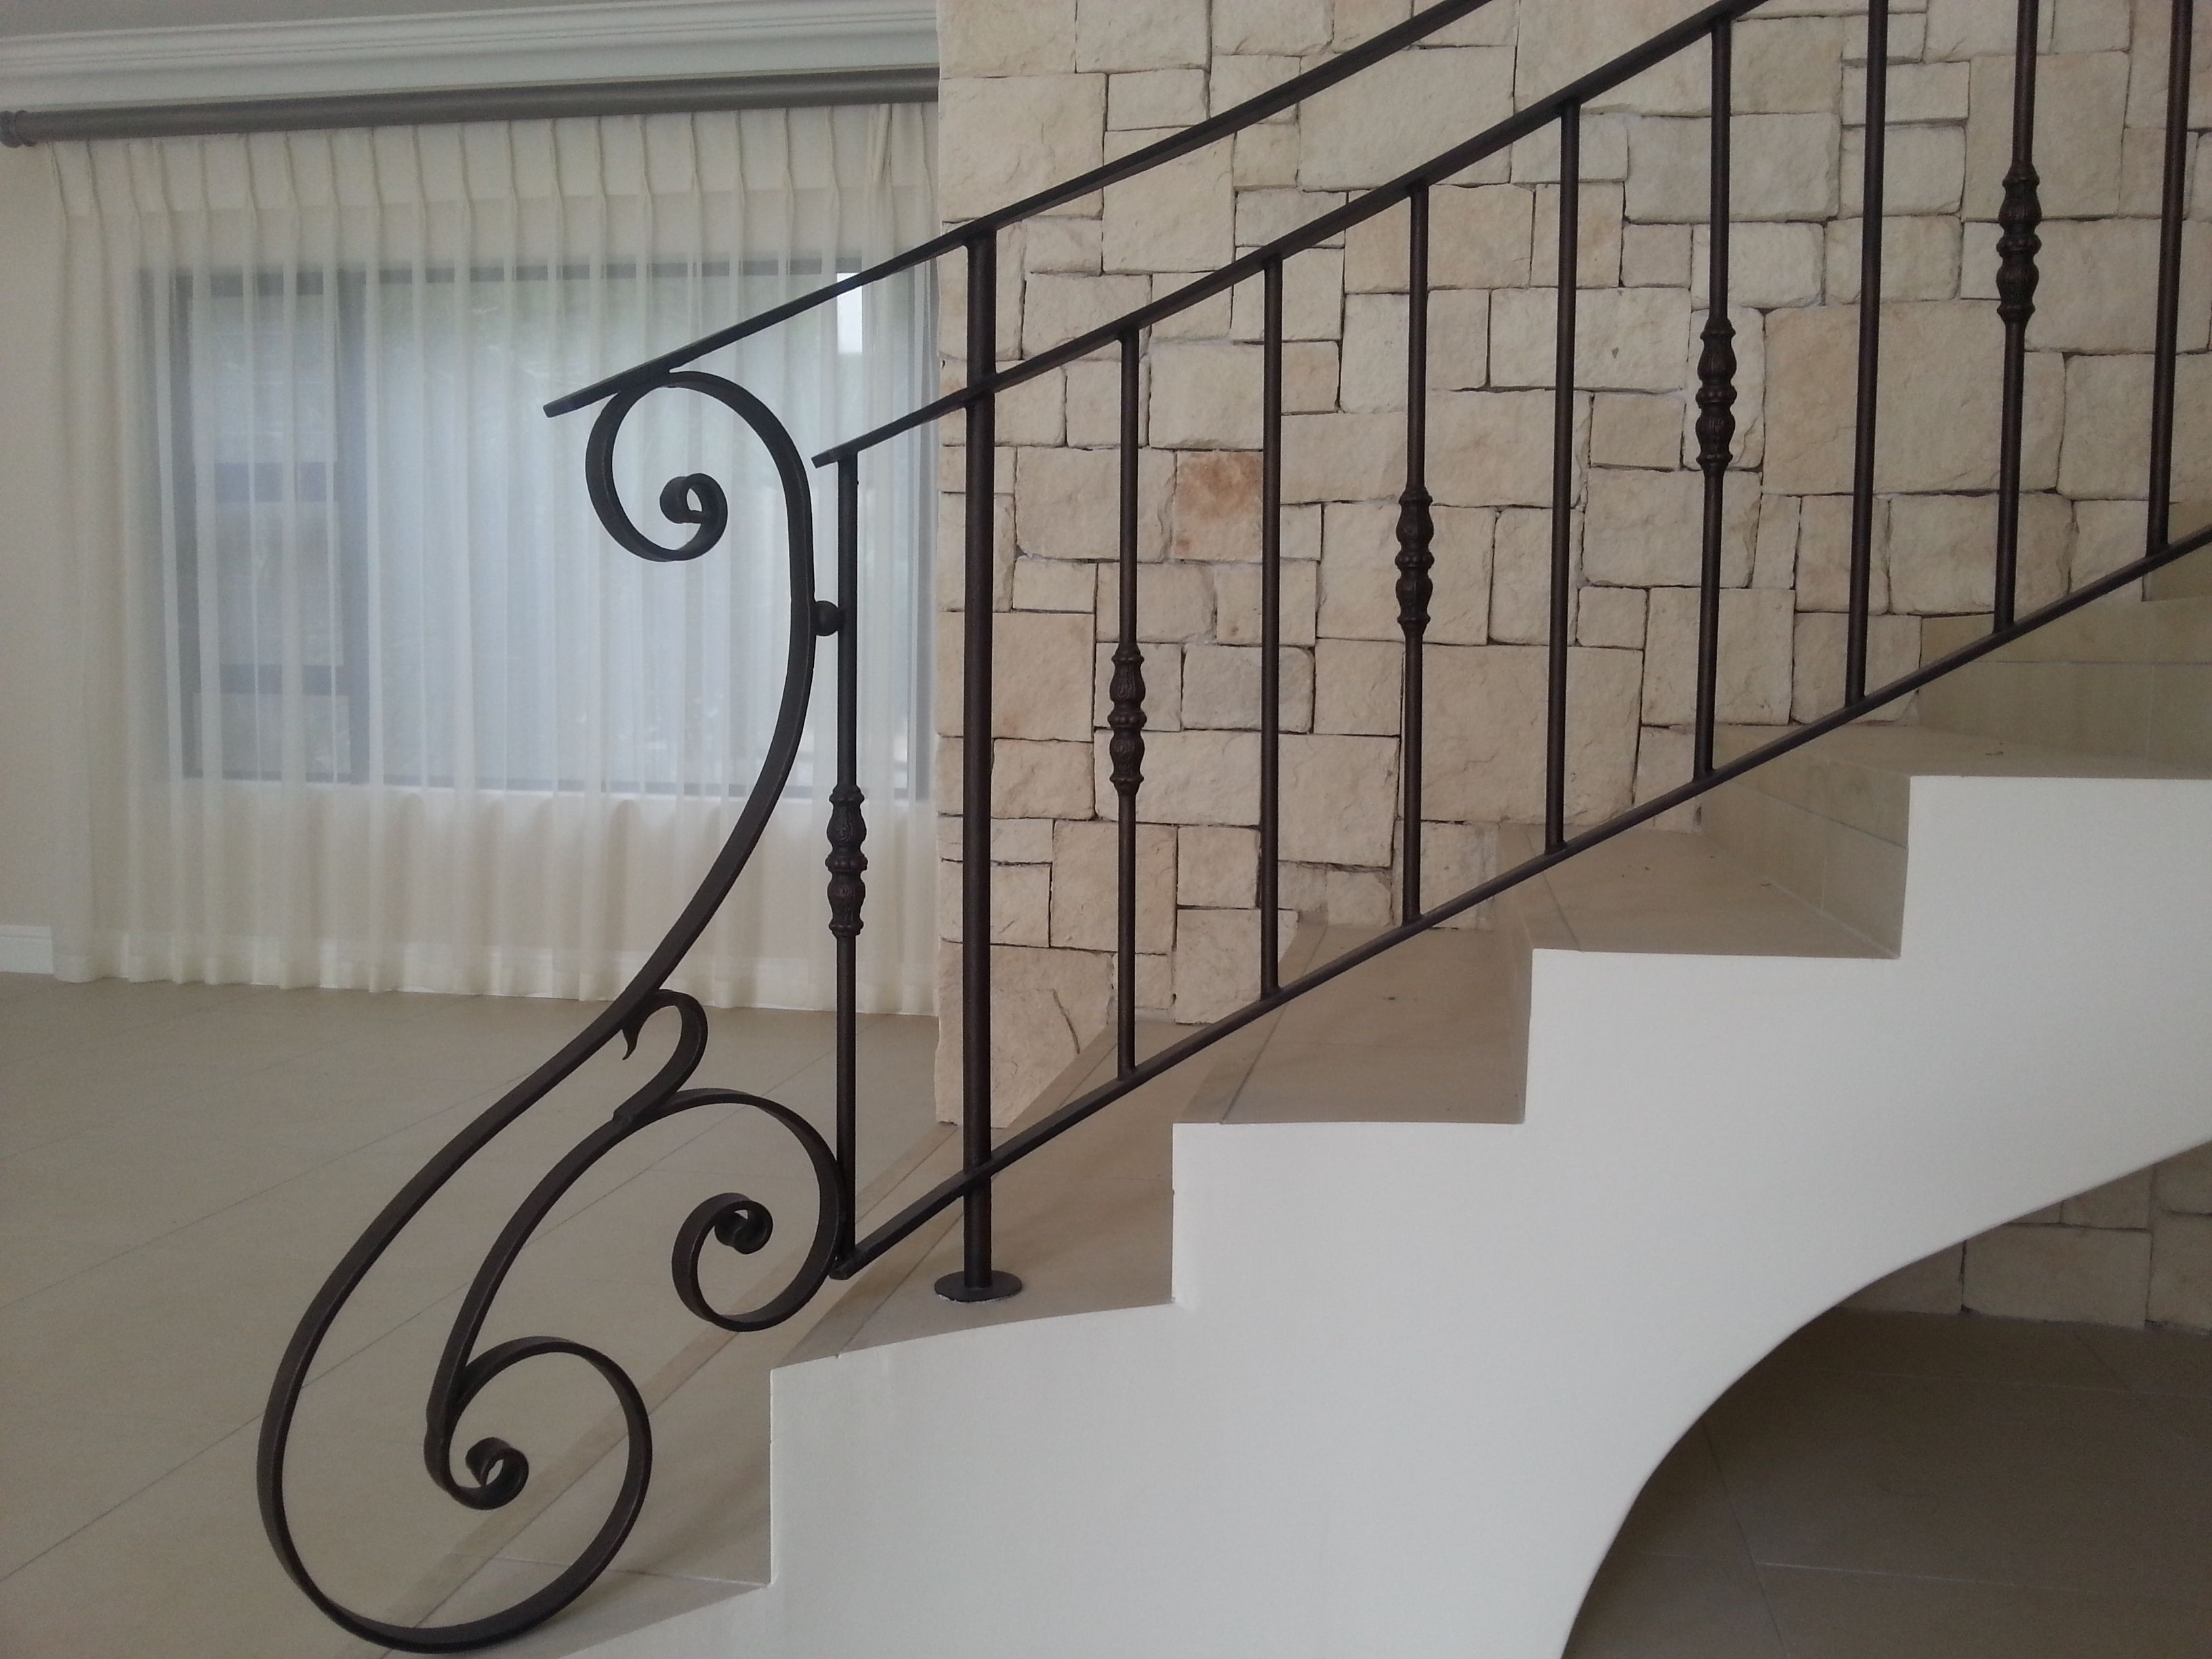 Wrought Iron Balustrades End Scroll Iron Stair Railing Wrought Iron Stairs Wrought Iron Stair Railing